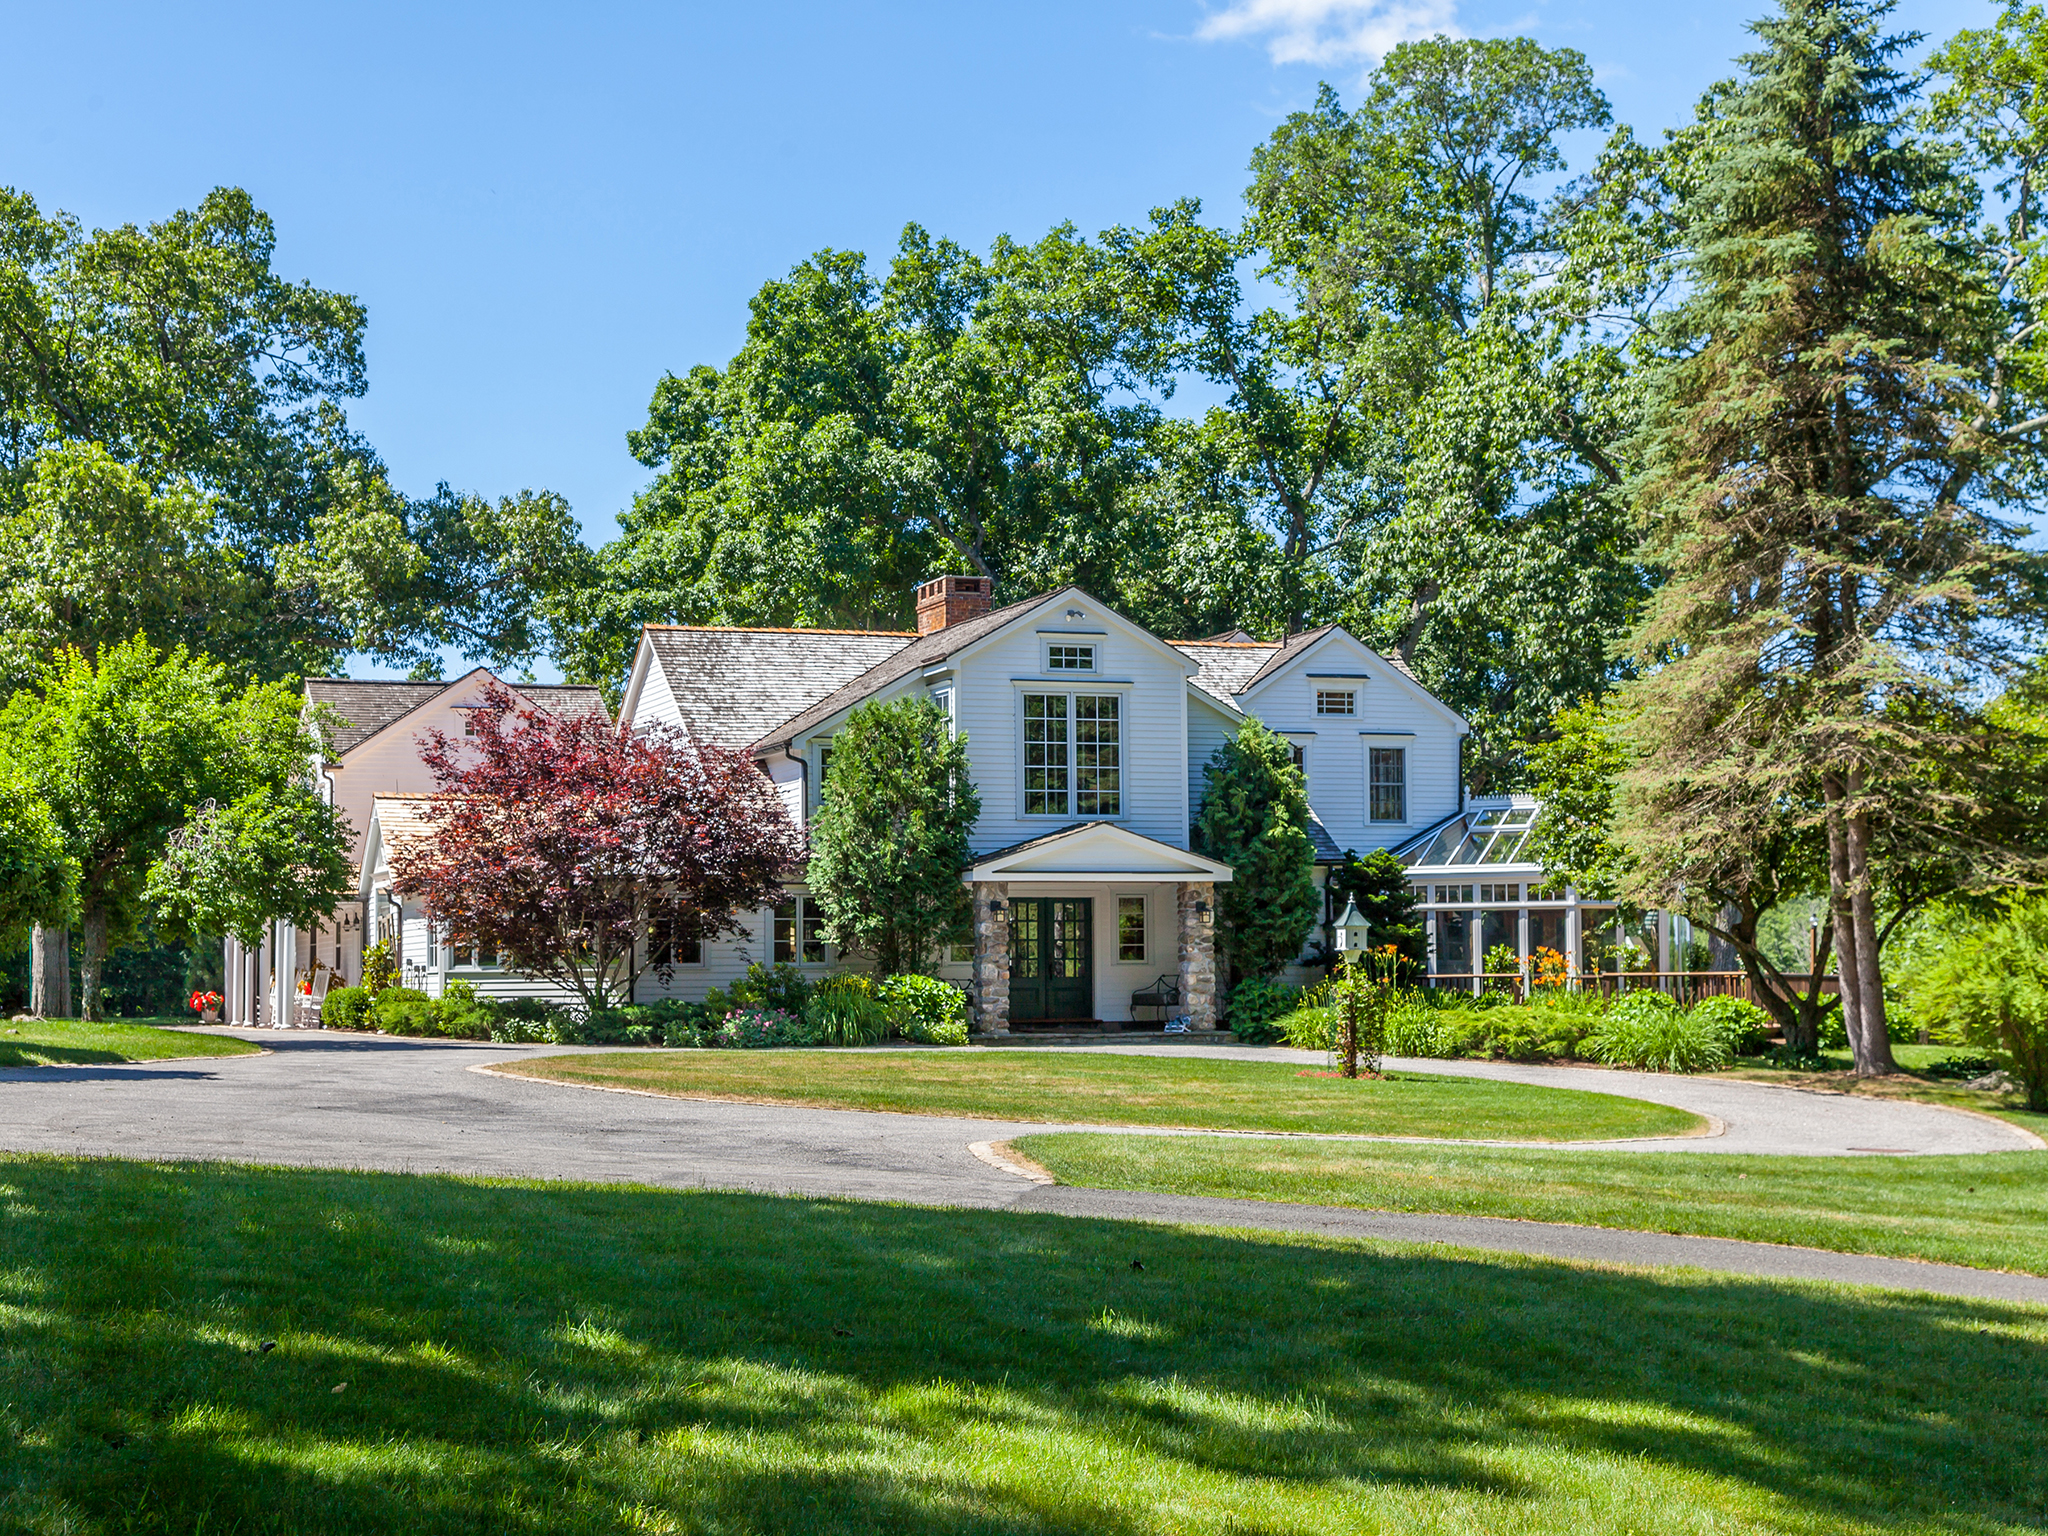 Single Family Home for Sale at Gentleman's Farm 84-86 Roxbury Rd Washington, Connecticut, 06793 United States